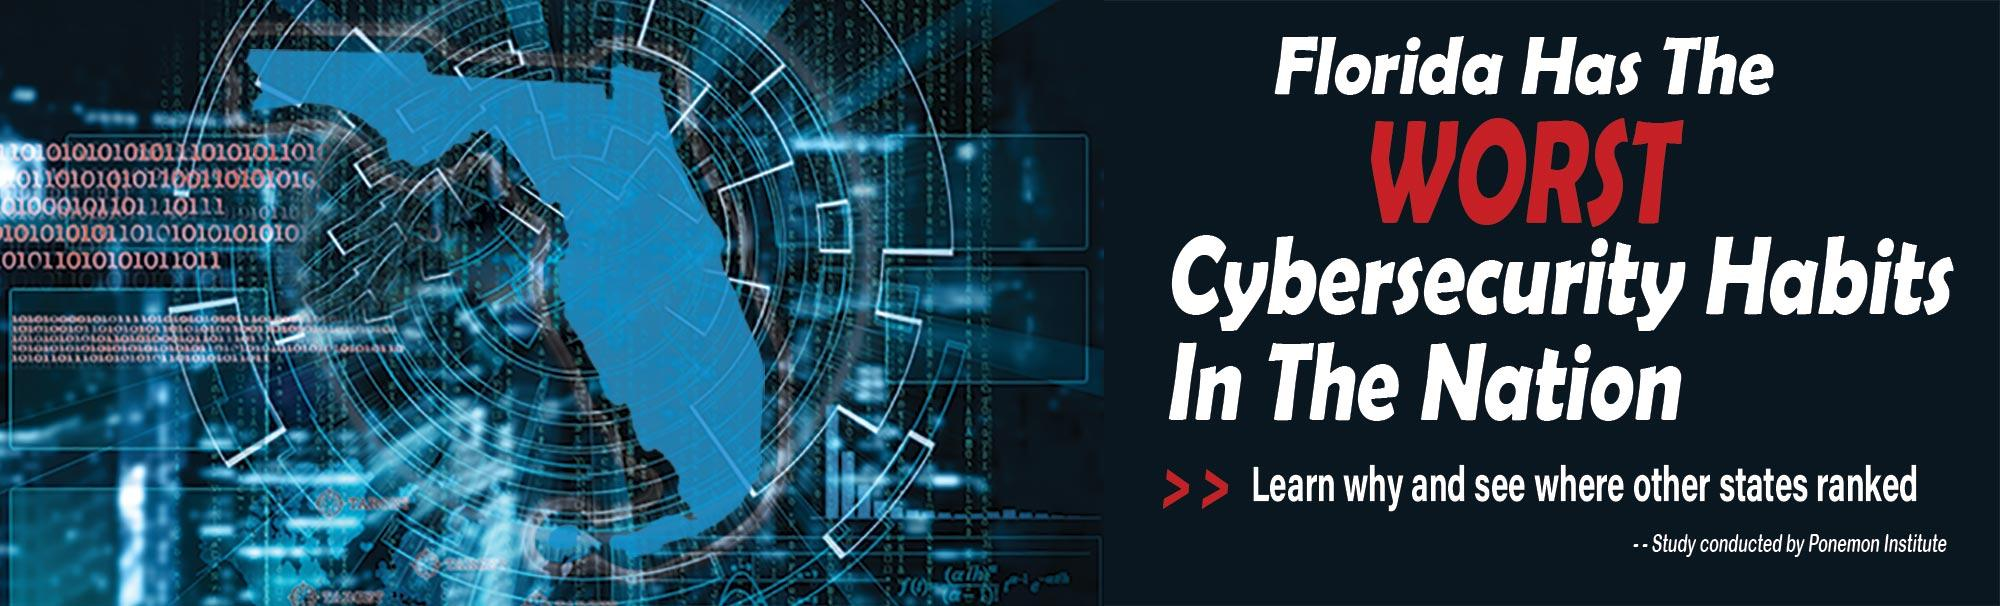 Florida has the worst cybersecurity habits in the United States. Learn why and see how other states ranked